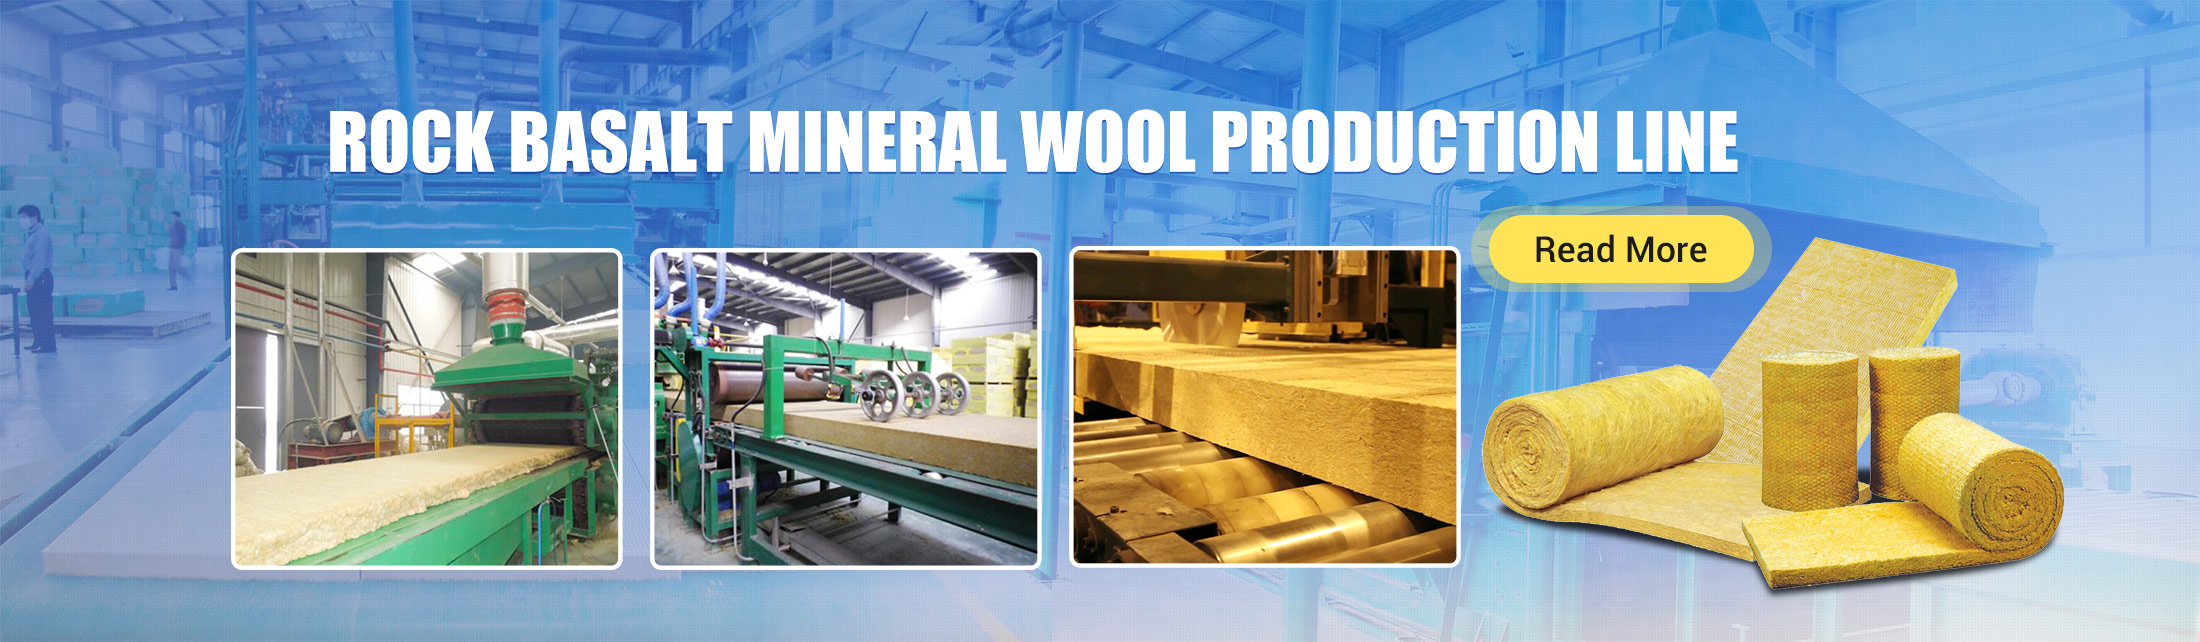 Rock Basalt Mineral Wool Production Line Machinery